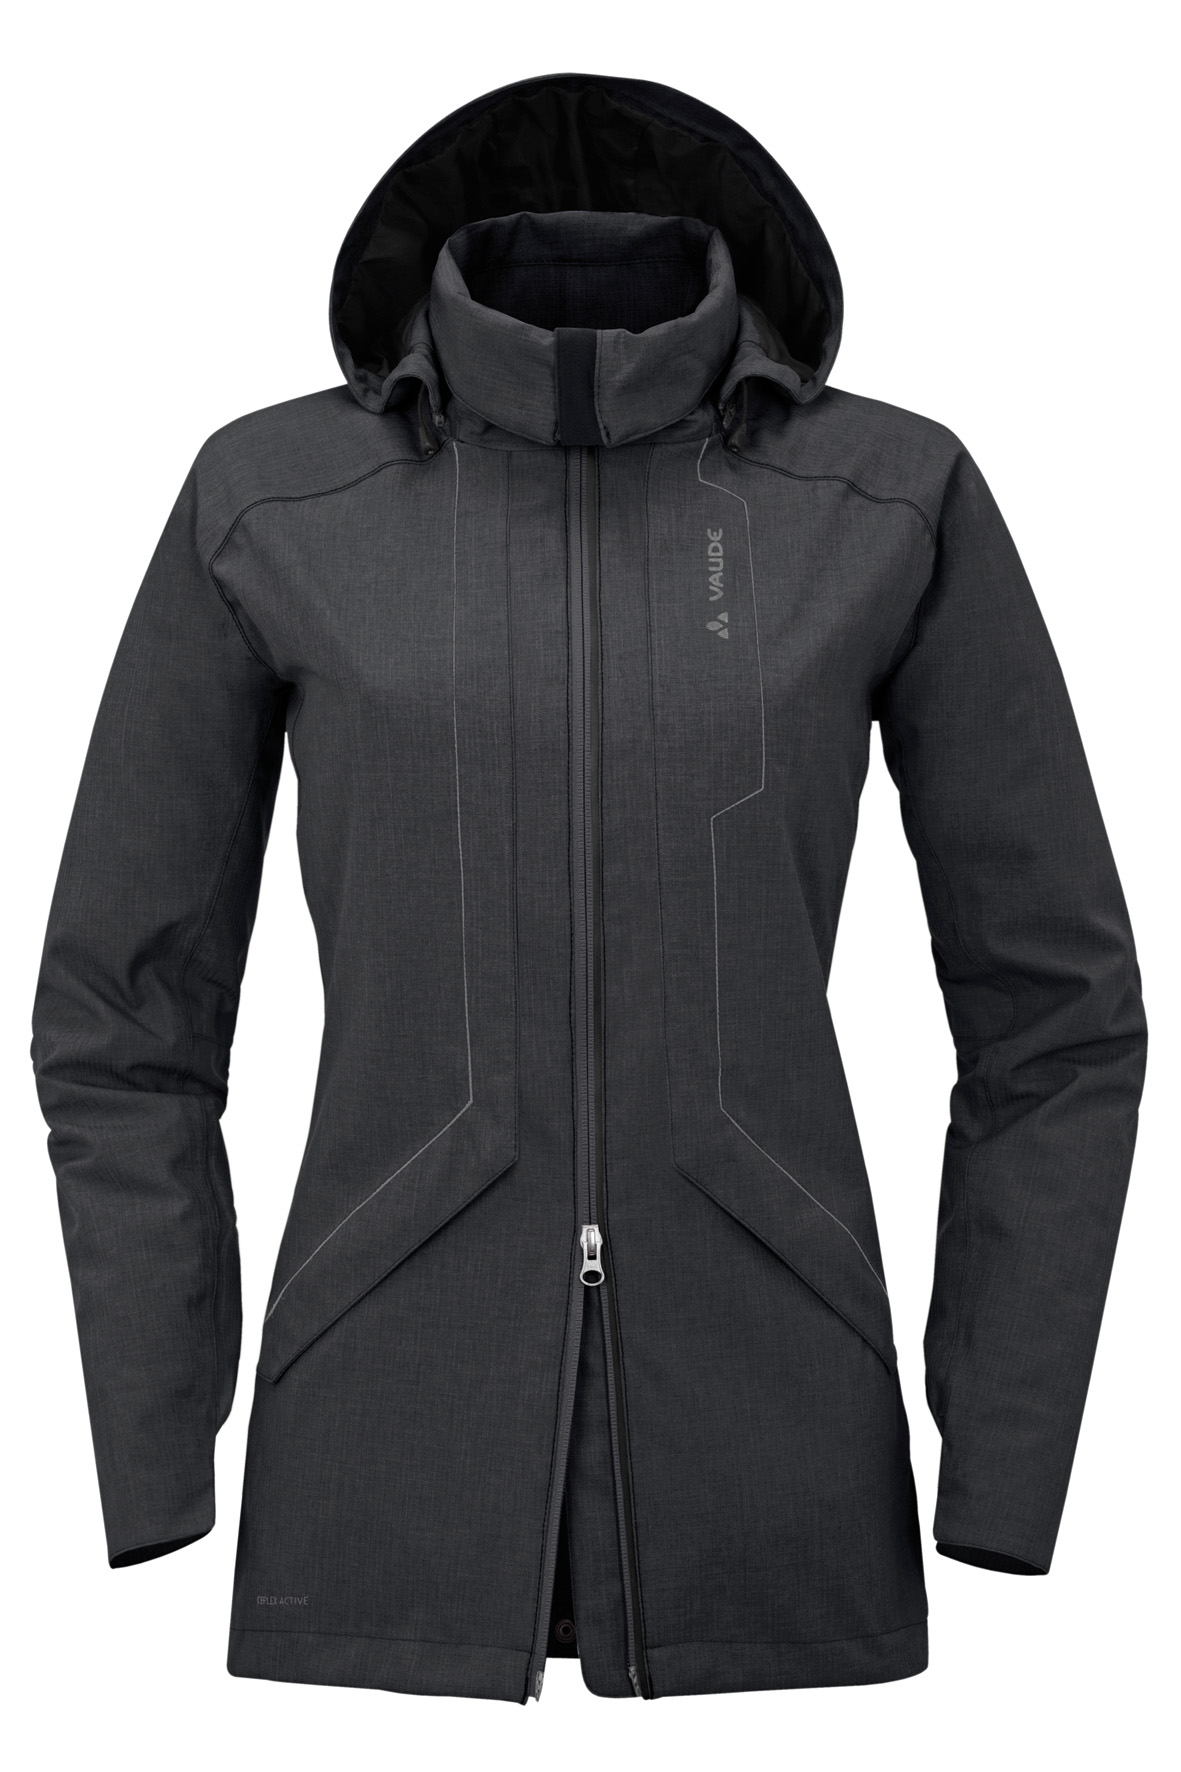 Women´s Homy Padded Jacket black Größe 34 - schneider-sports